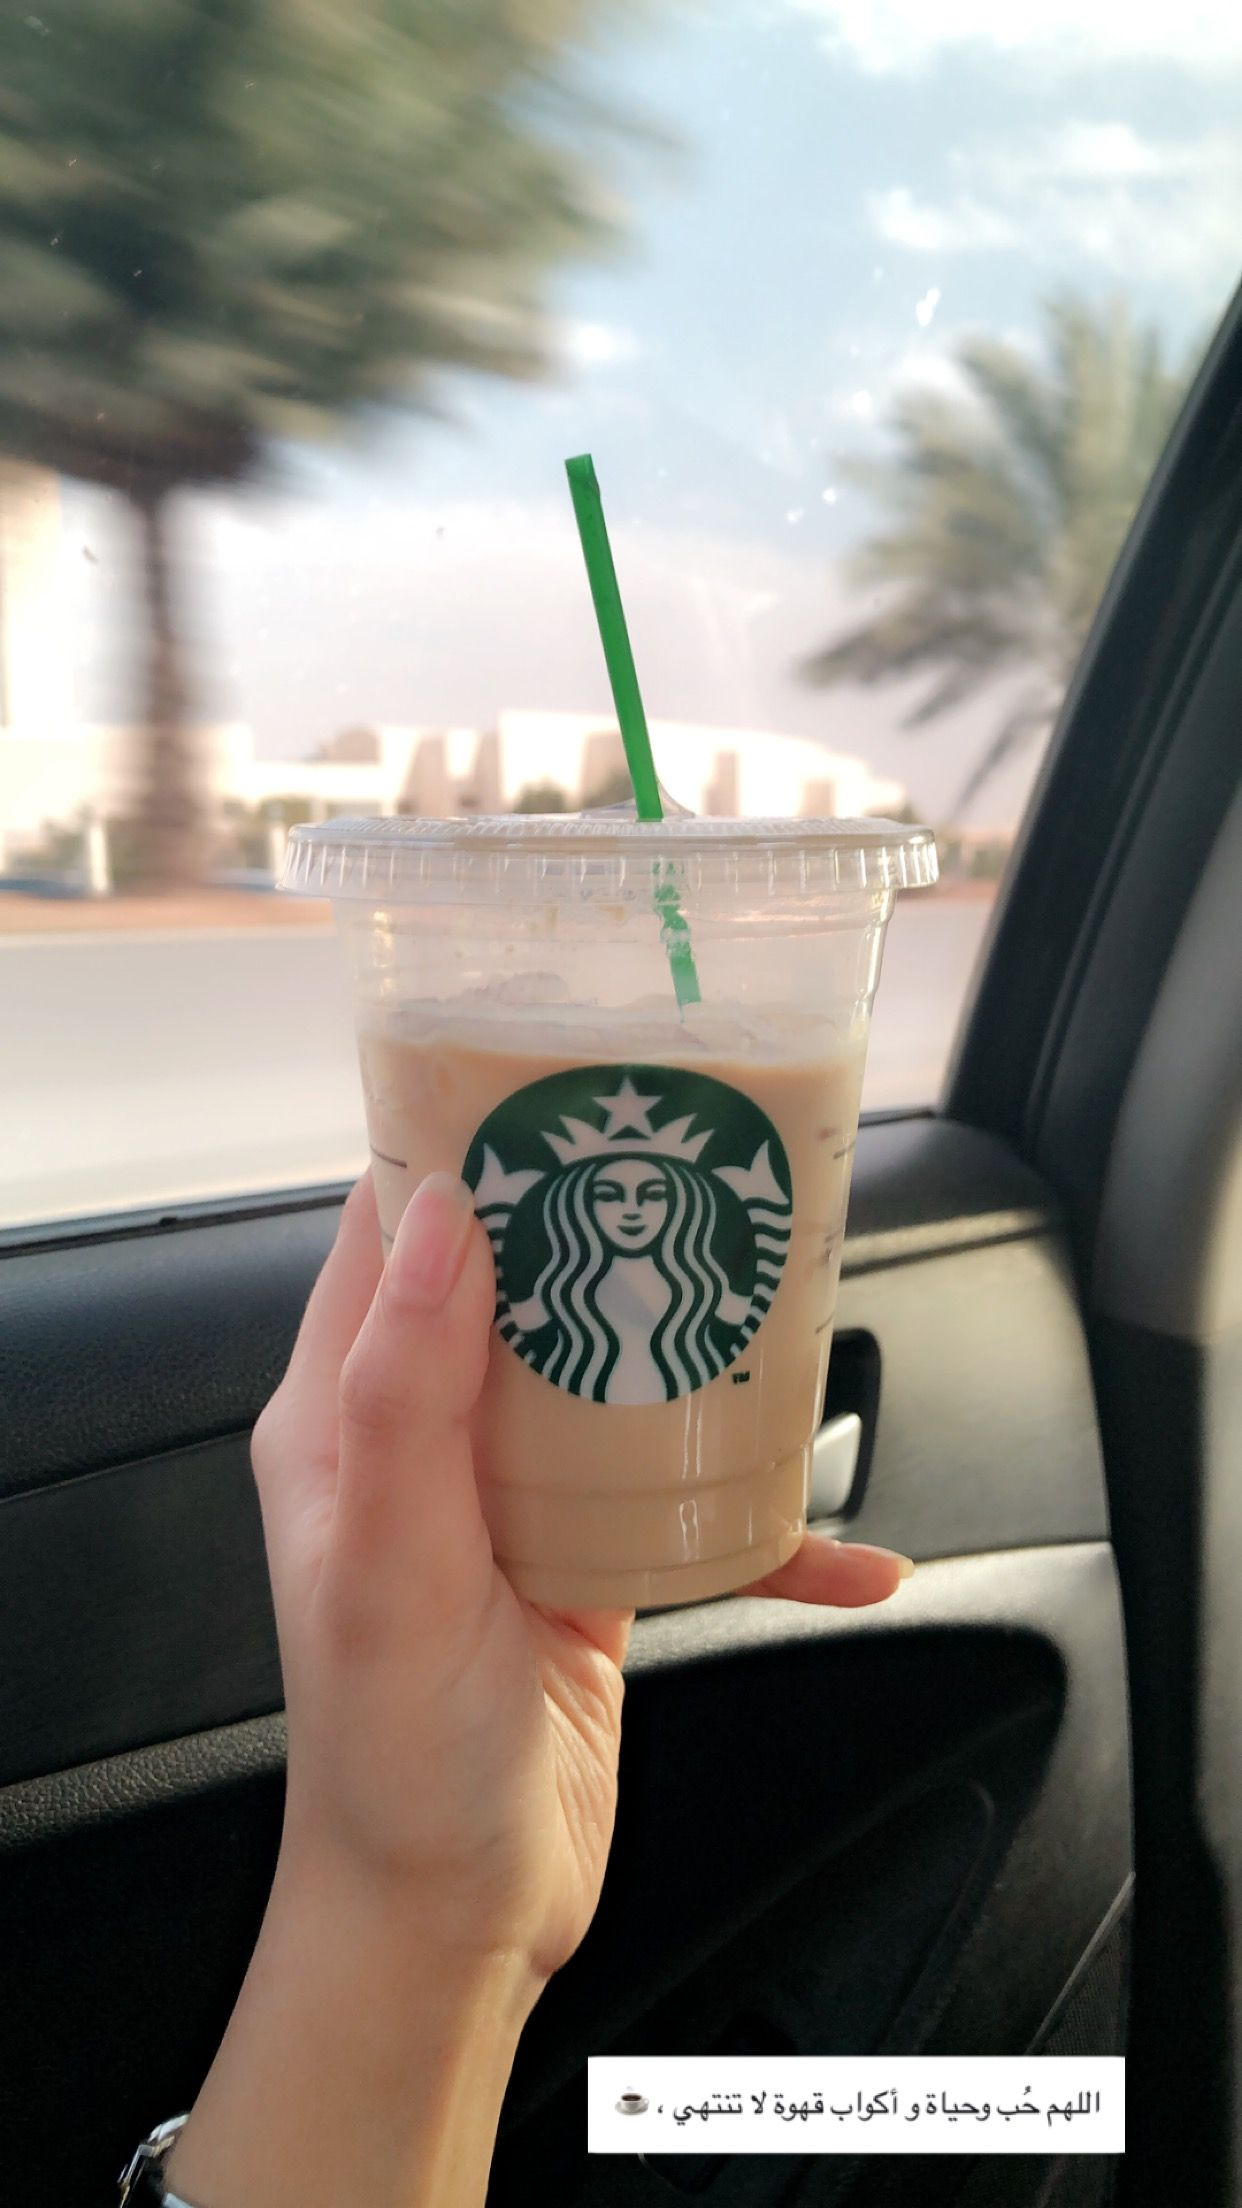 Pin By Mno On Mno Girly Images Sweet Drinks Selfie Ideas Instagram